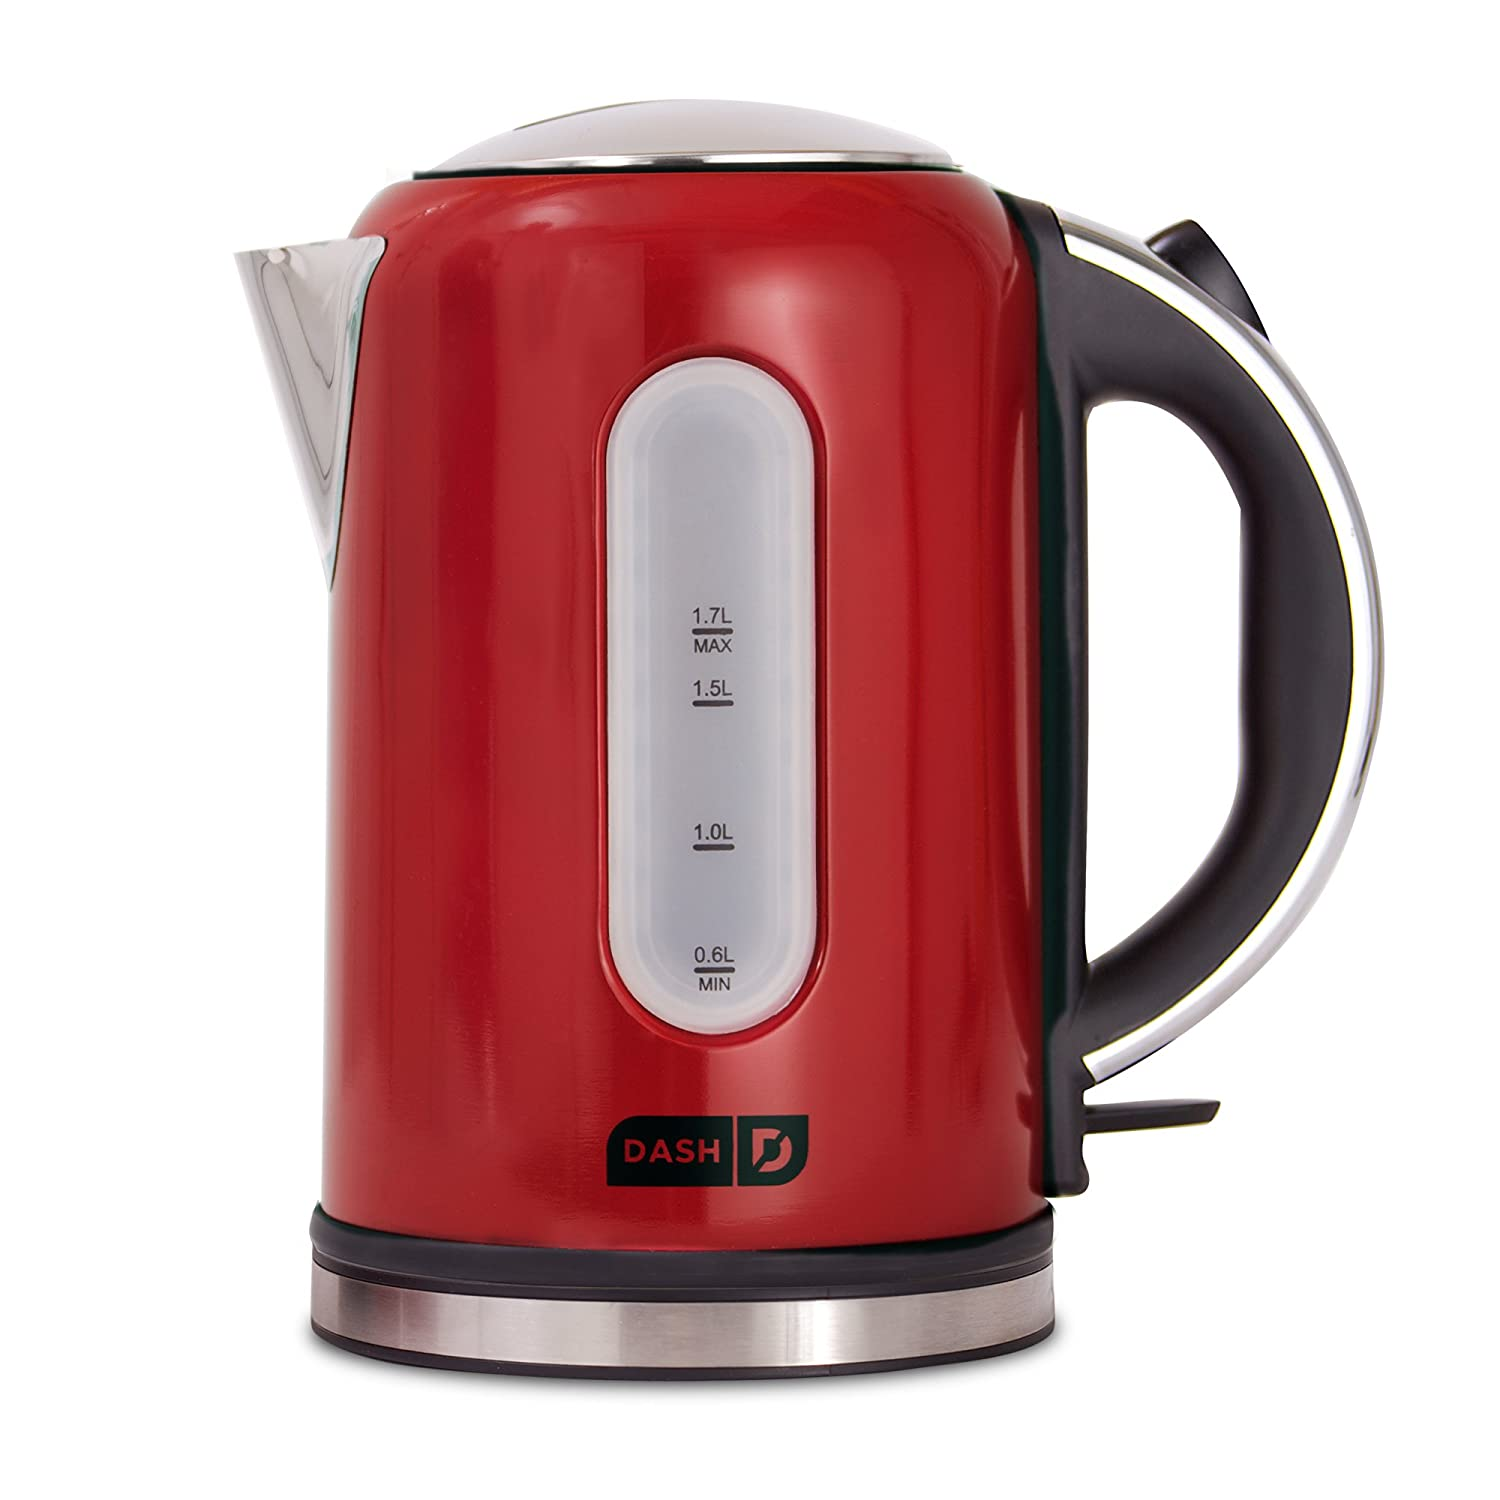 Dash DEK001RD Electric Kettle + Water Heater with Rapid Boil, Cool Touch Handle, Cordless Carafe, No Drip Spout + Auto Shut off for Coffee, Tea, Espresso & More 57 oz / 1.7 L Red